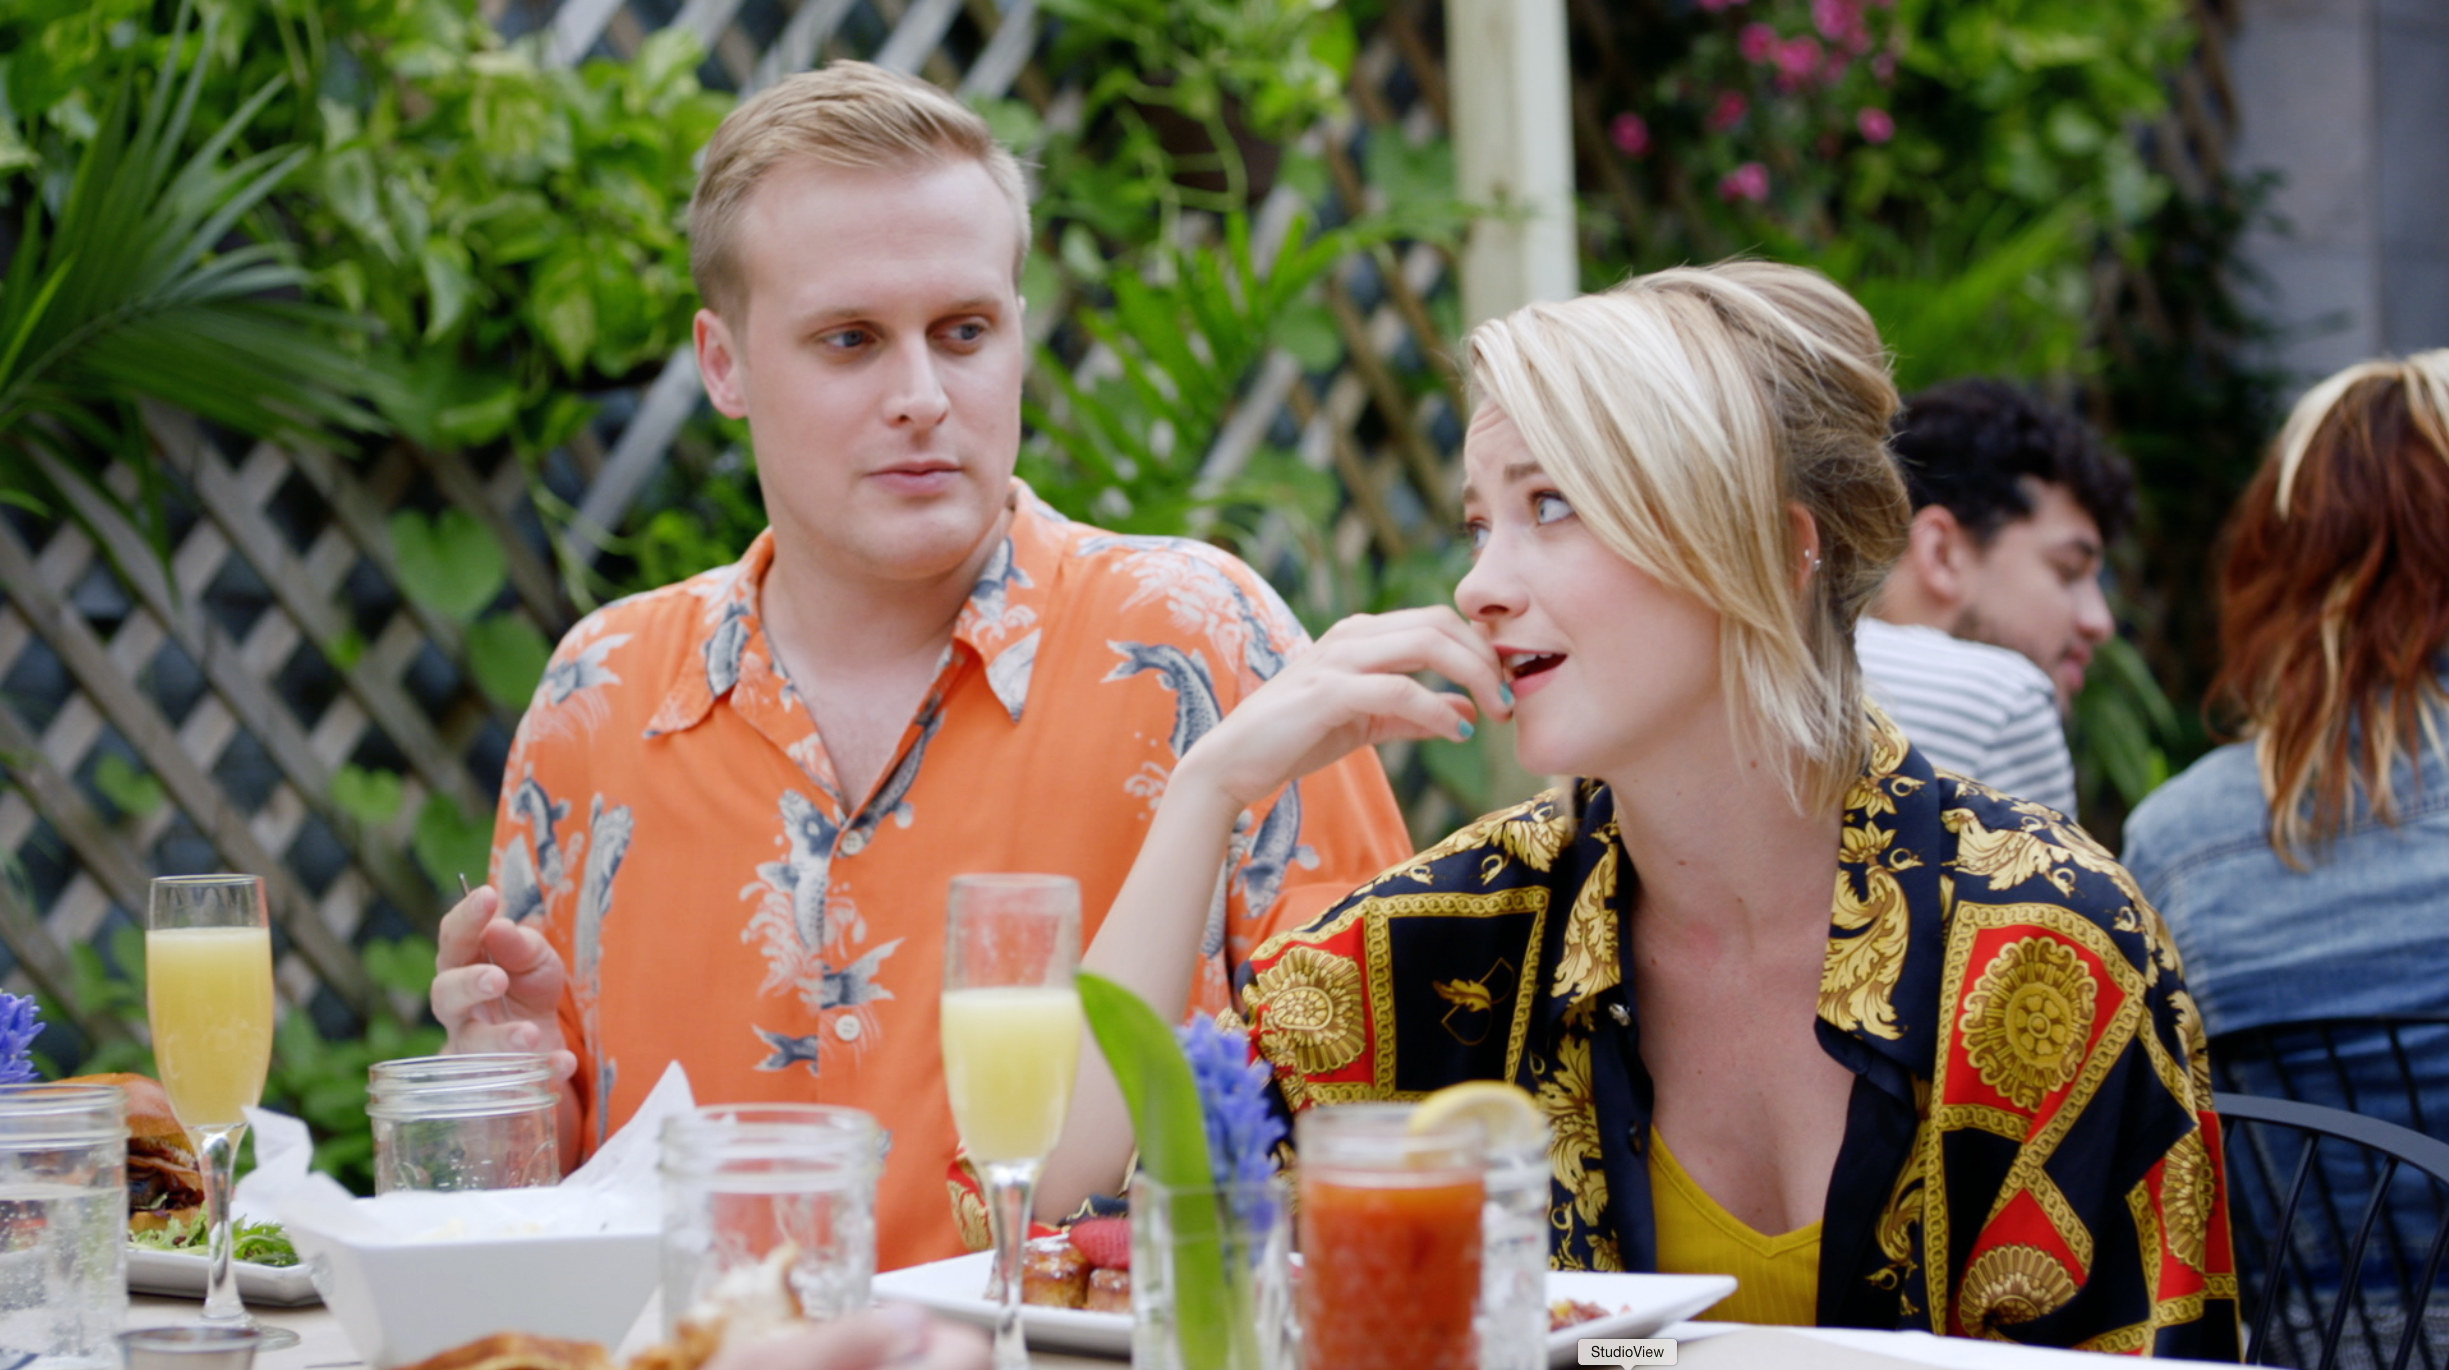 John Early and Meredith Hagner at brunch